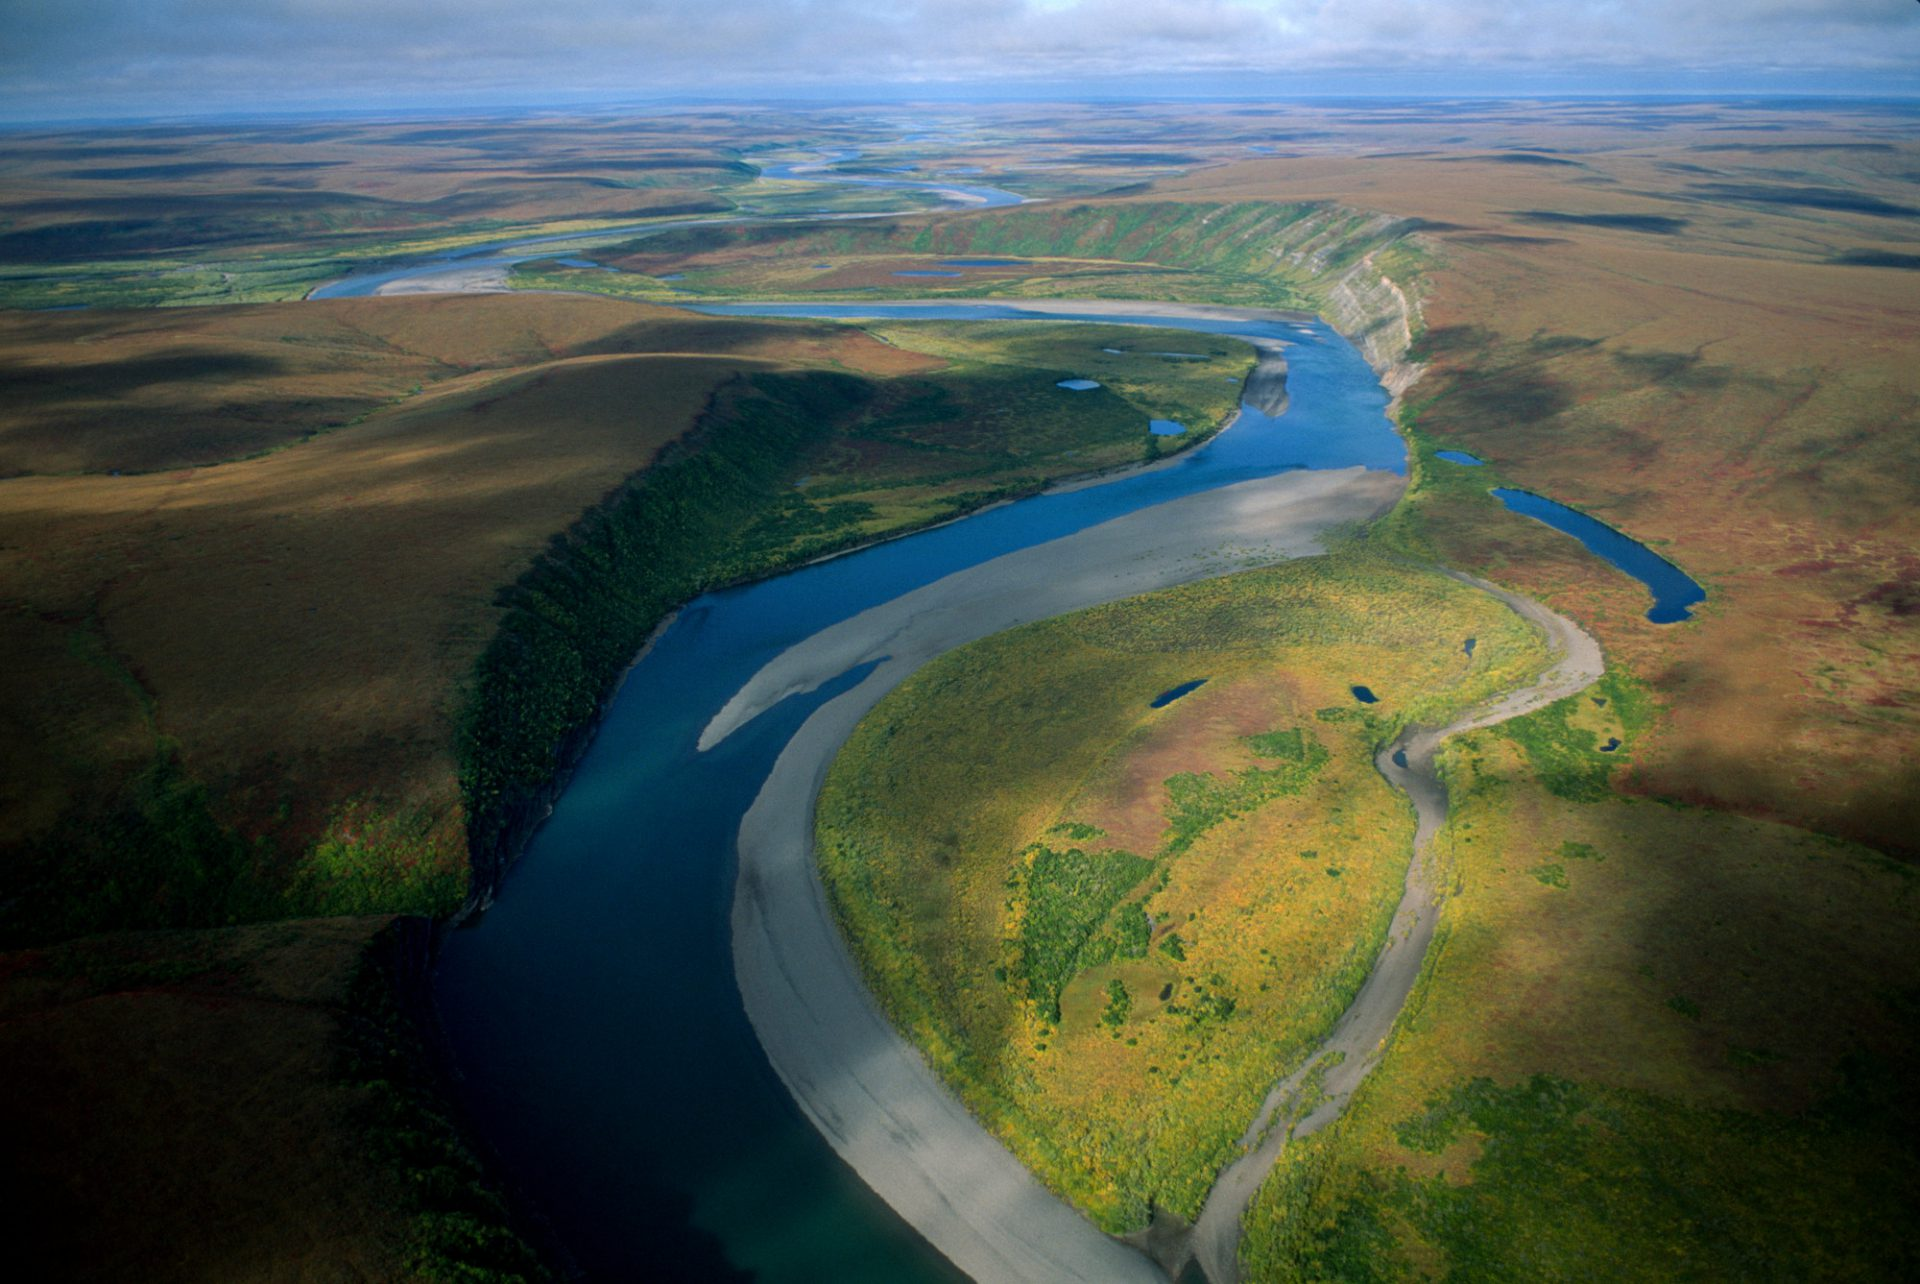 Photo: The Colville River at Killik Bend on the North Slope of Alaska.